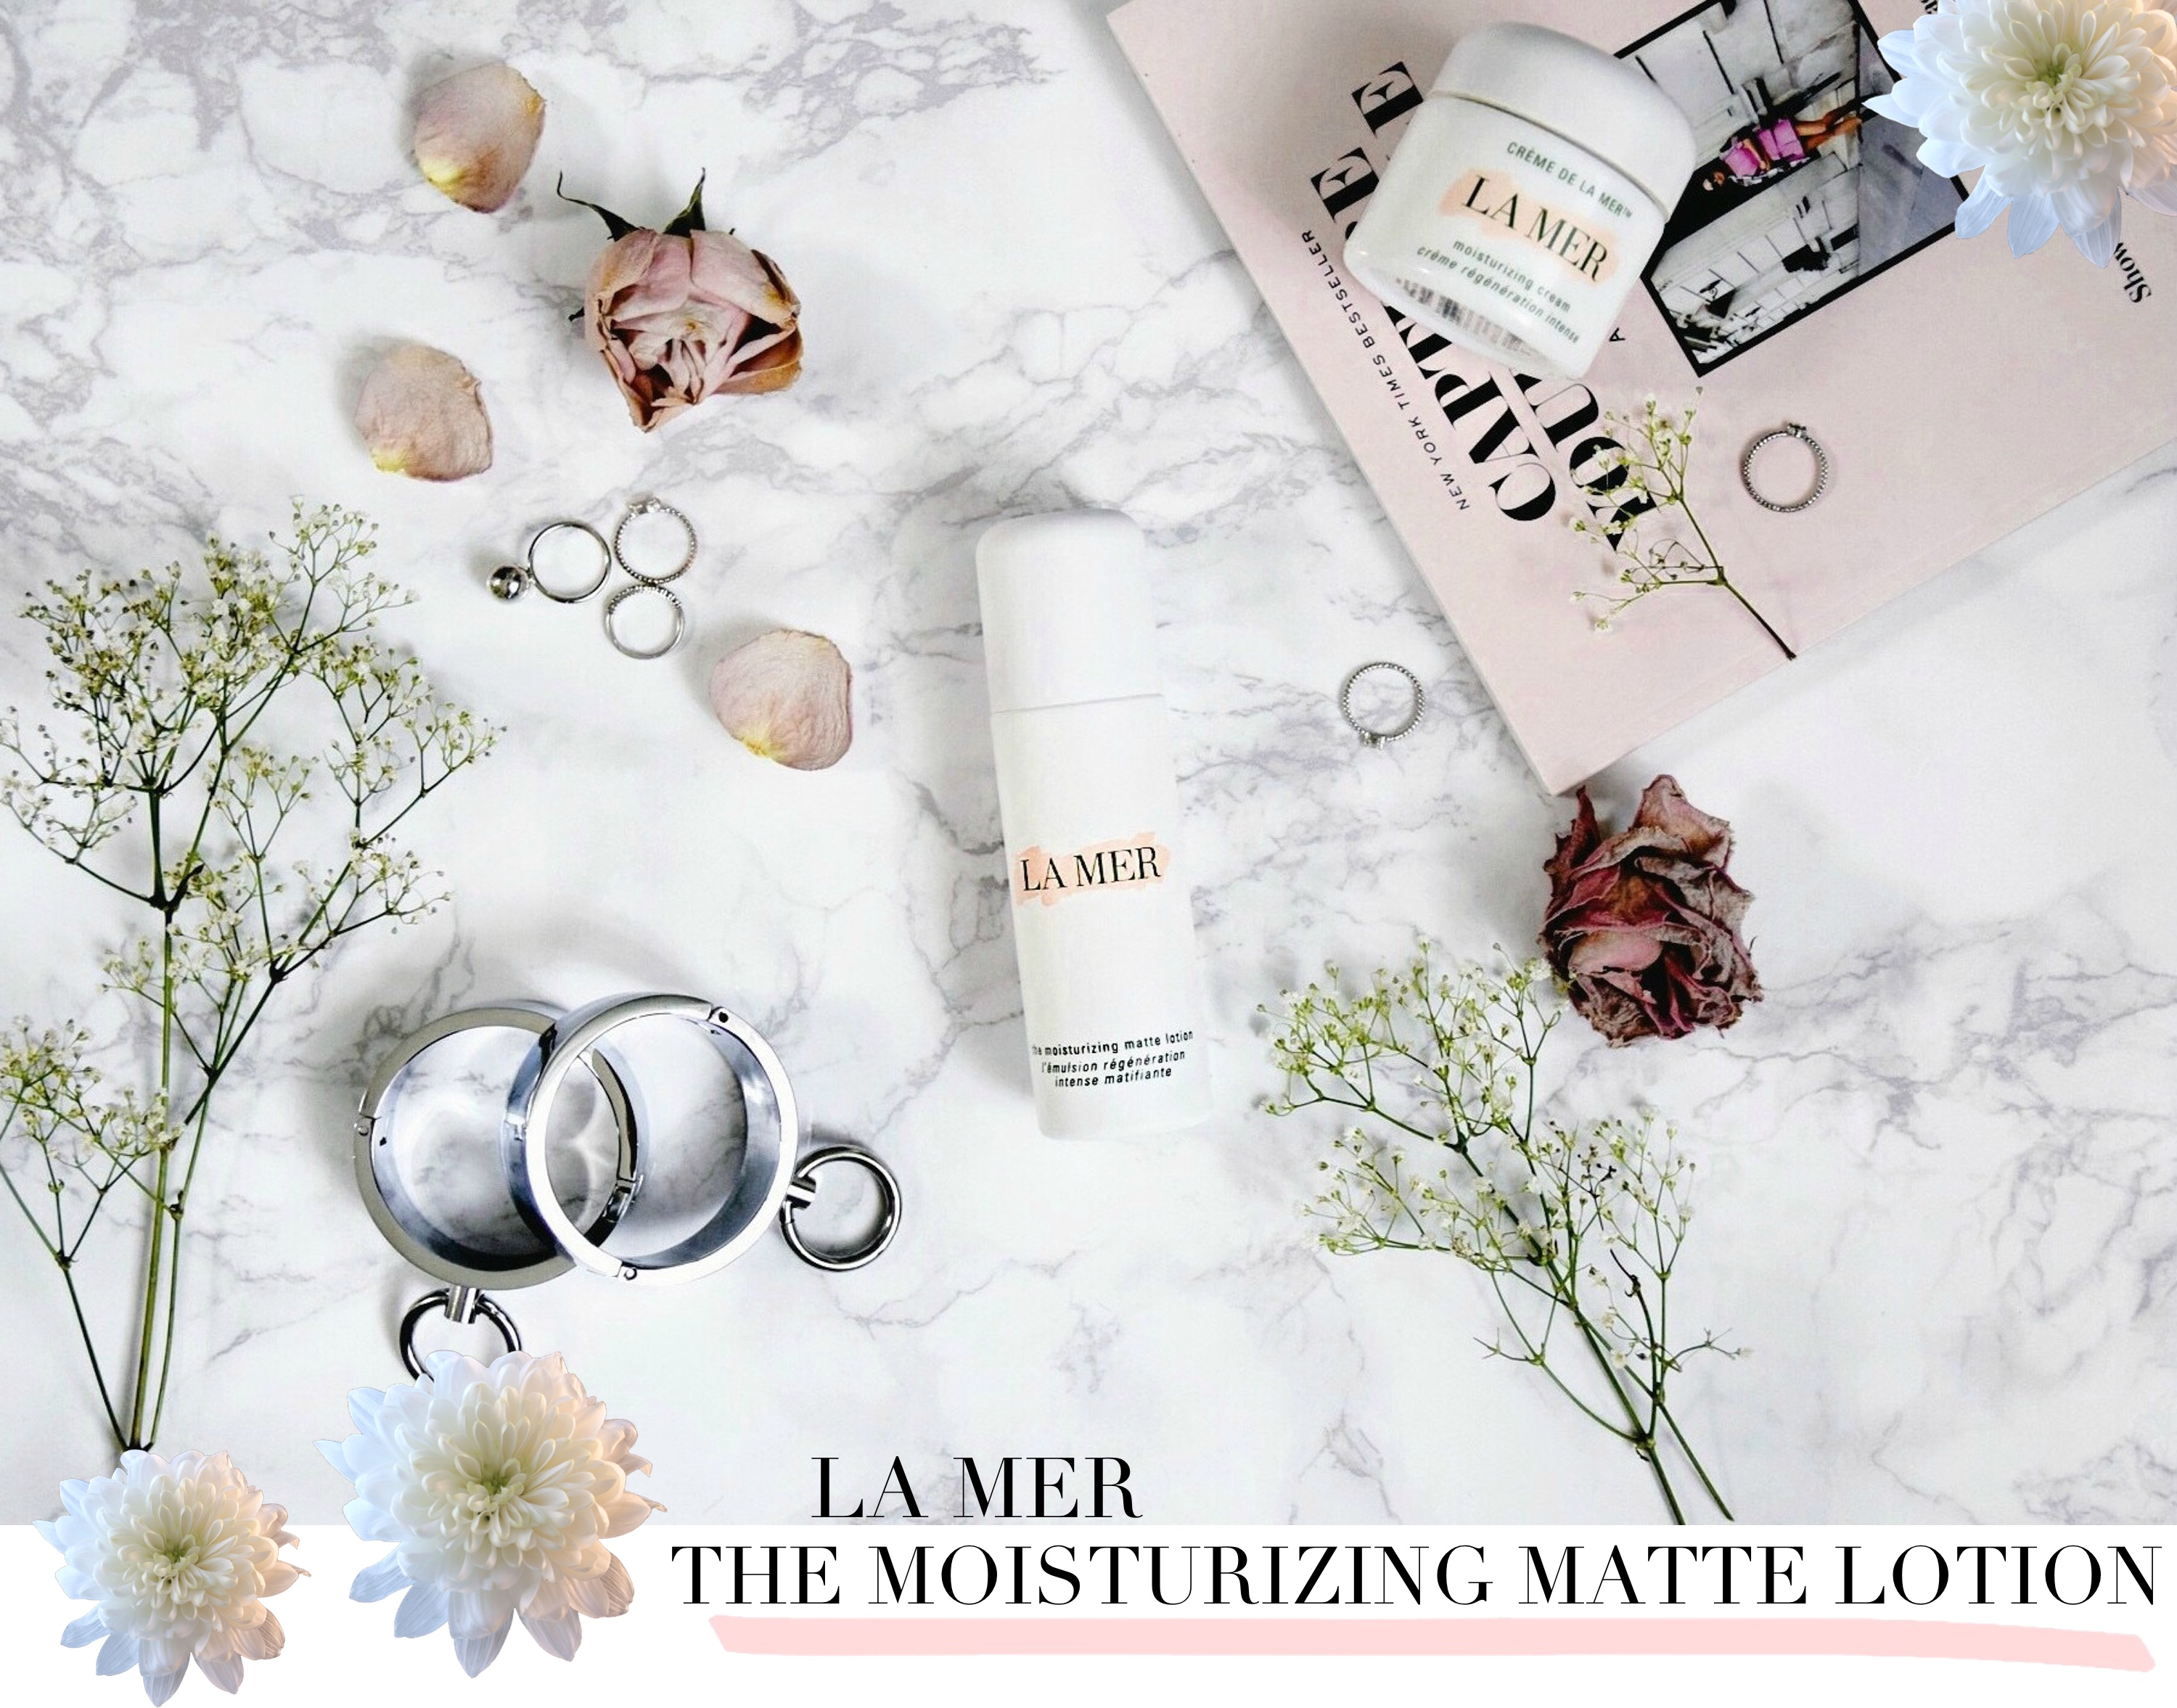 On My Vanity // La Mer - The Moisturizing Matte Lotion // Los Angeles Fashion Blogger Daphne Blunt // Beauty & Skincare Routine: To Style, With Love